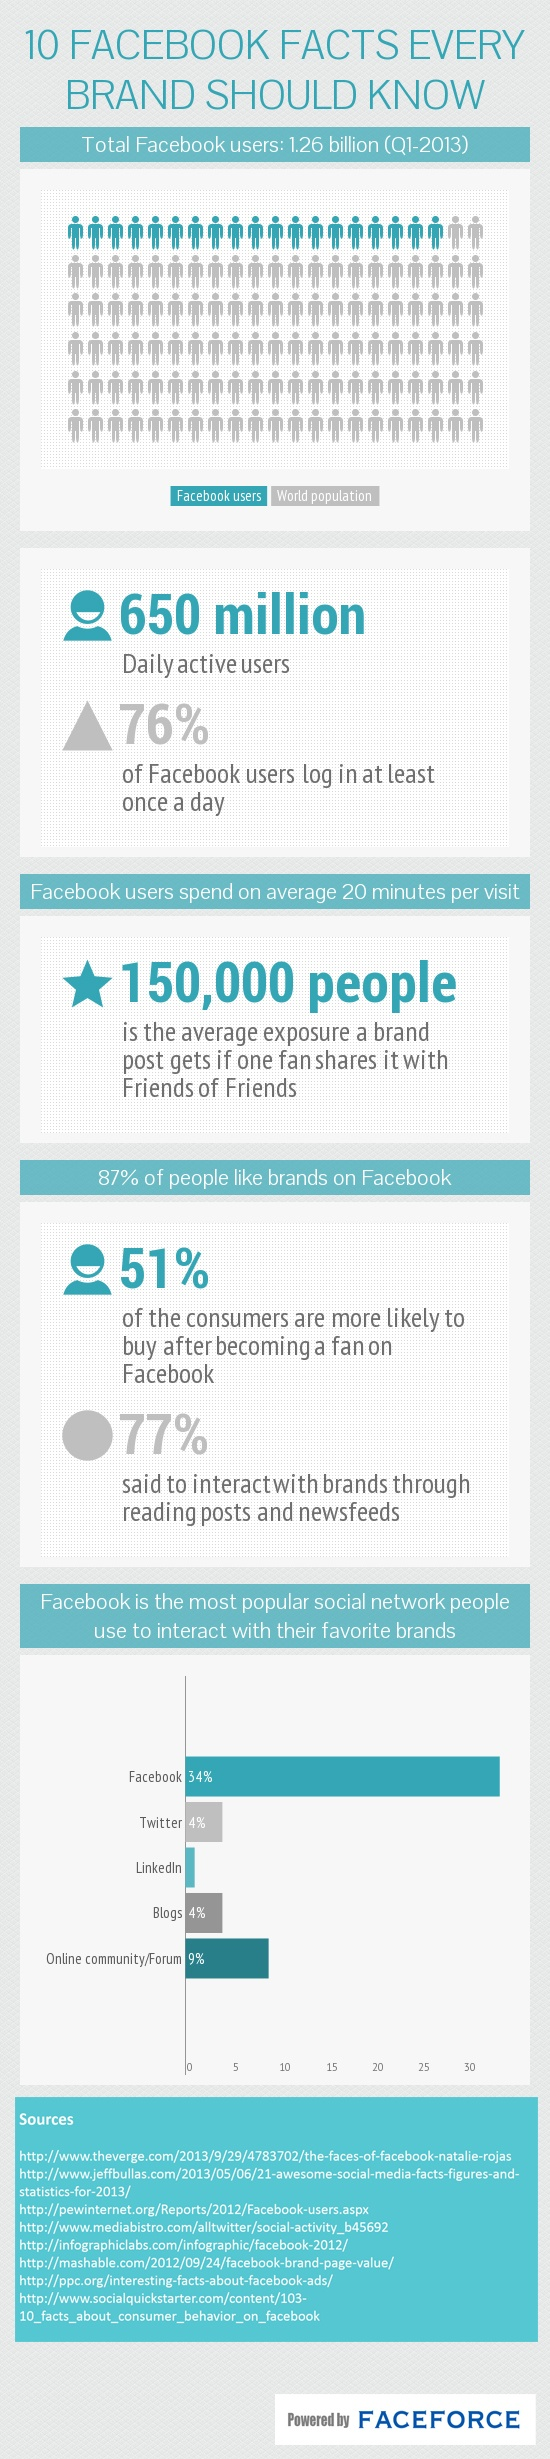 10 Facebook Facts Every Brand Should Know [Infographic]